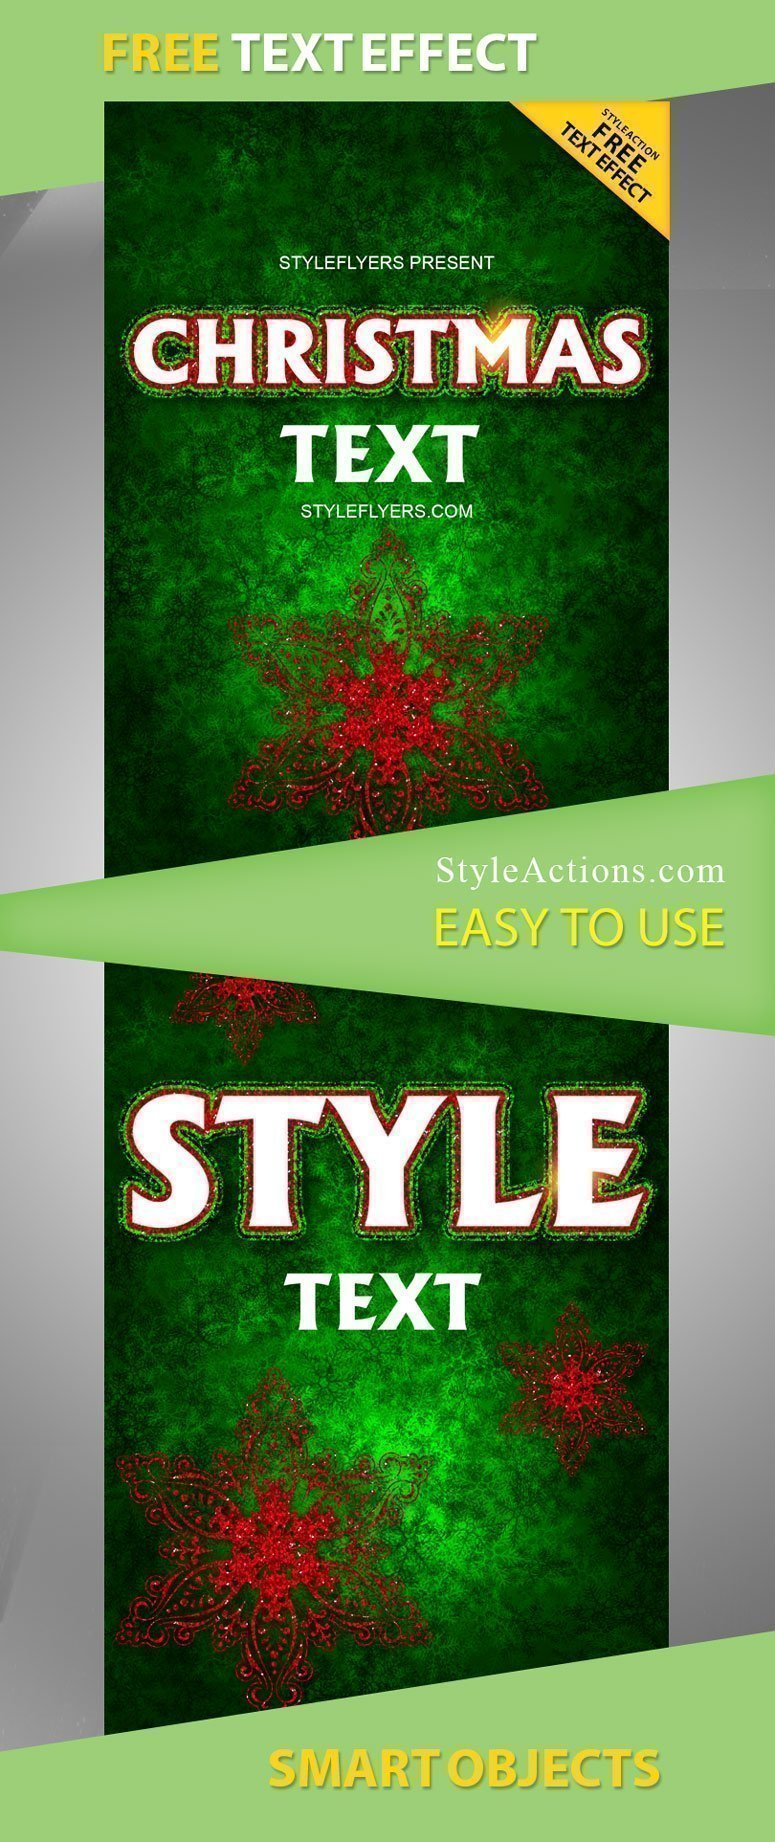 preview_free_text